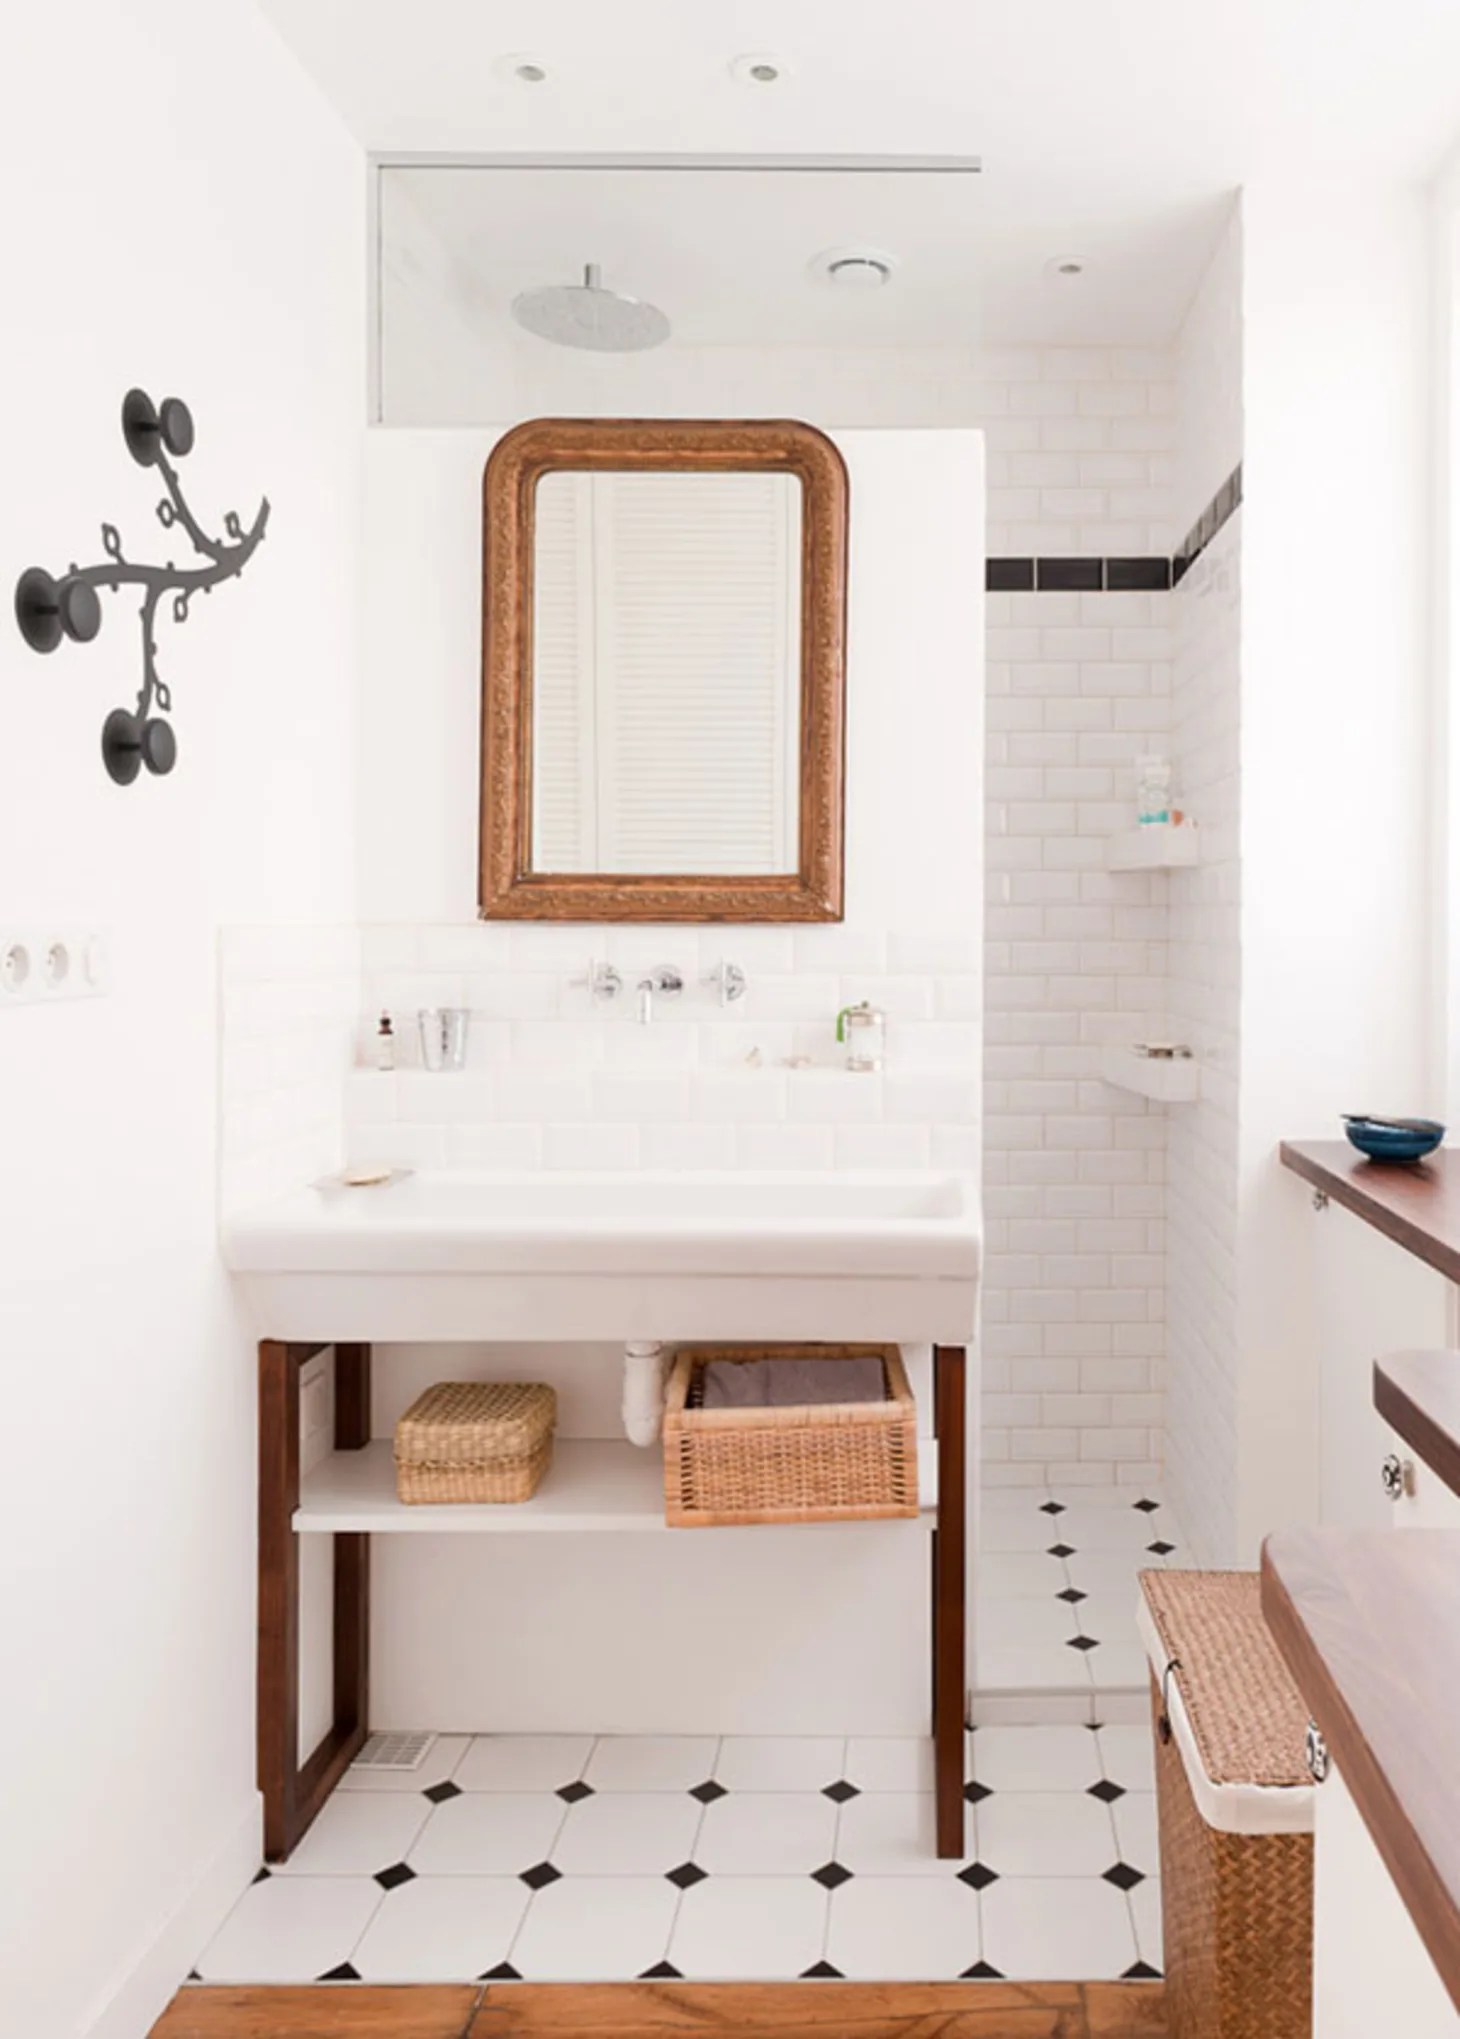 Stylish Remodeling Ideas for Small Bathrooms | Apartment ... on Small Apartment Bathroom Storage Ideas  id=12444